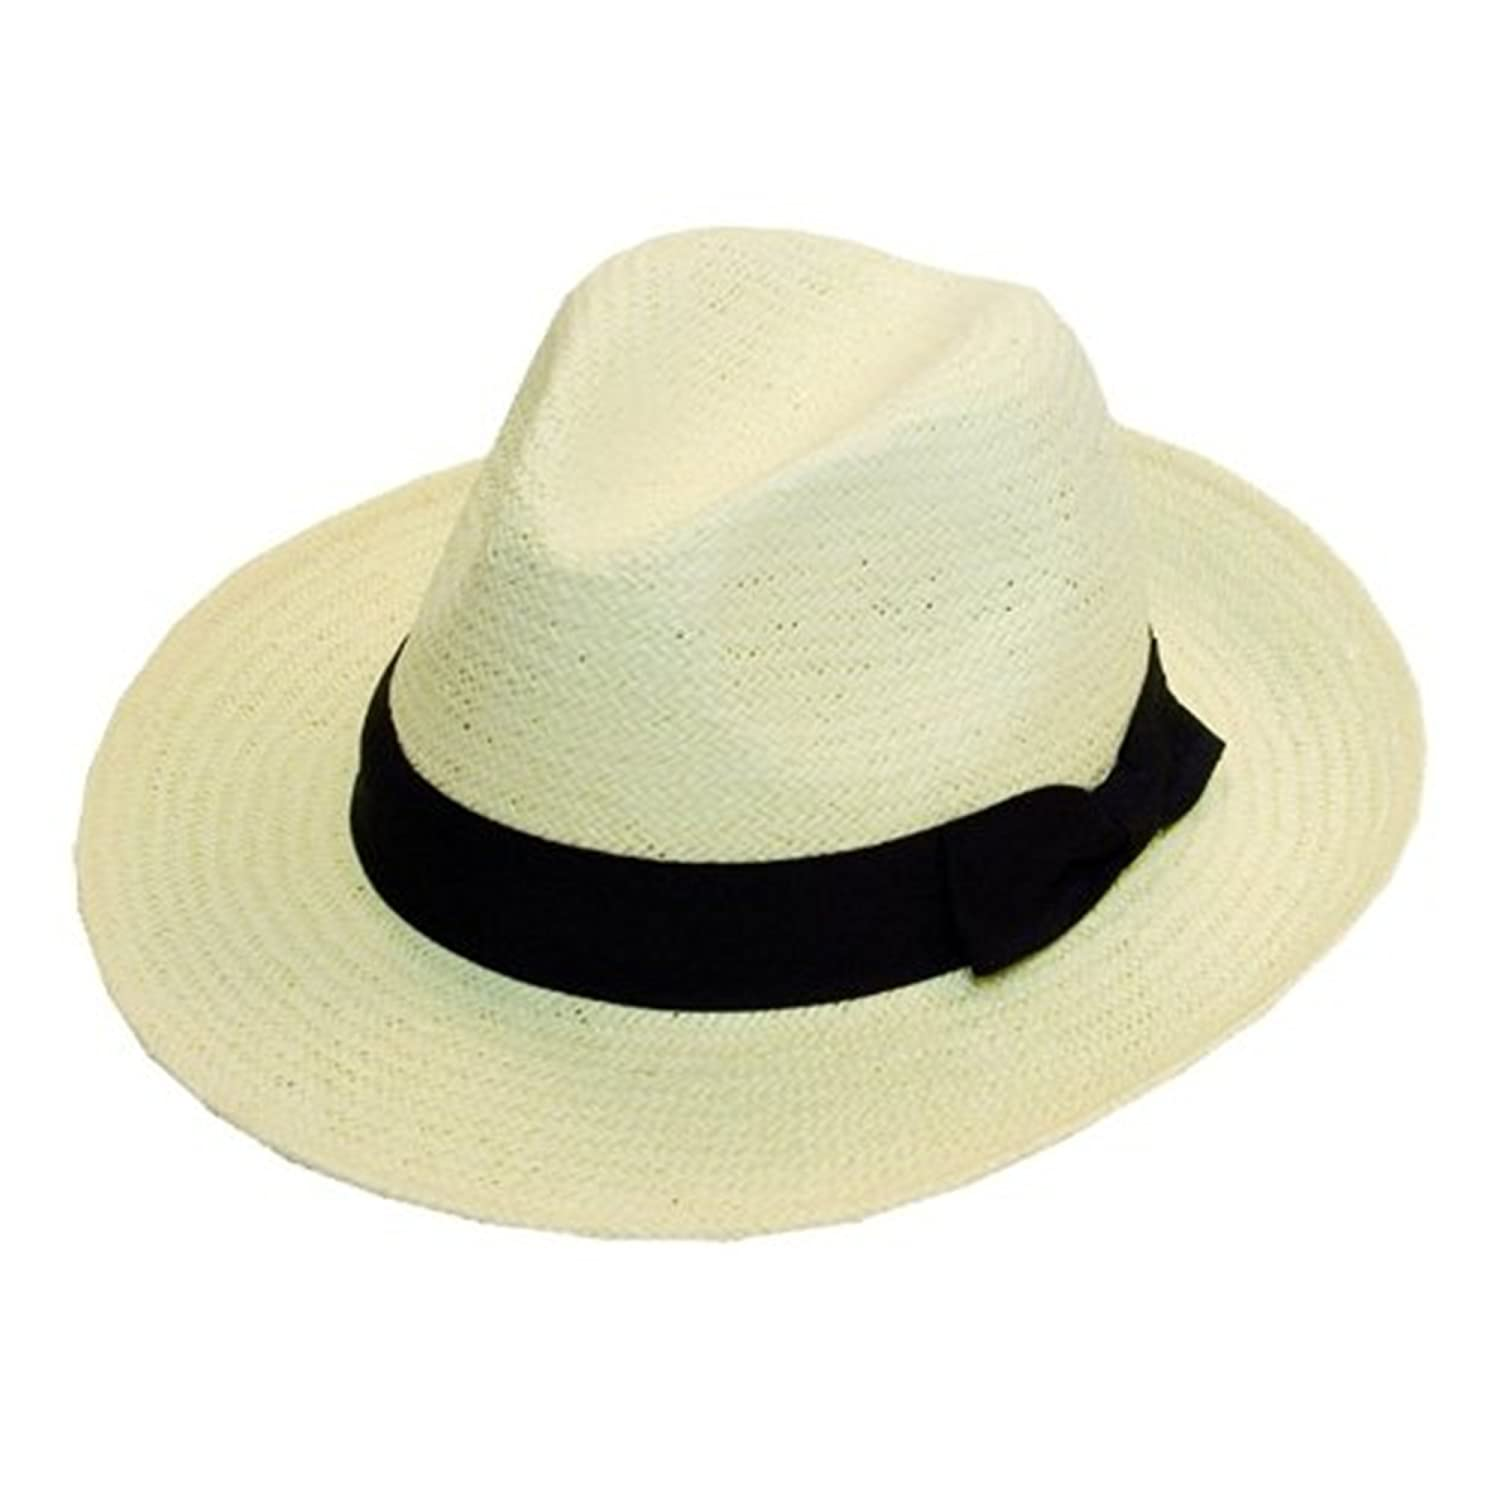 Quality White Straw Panama Hat with black band. (one size fits all)